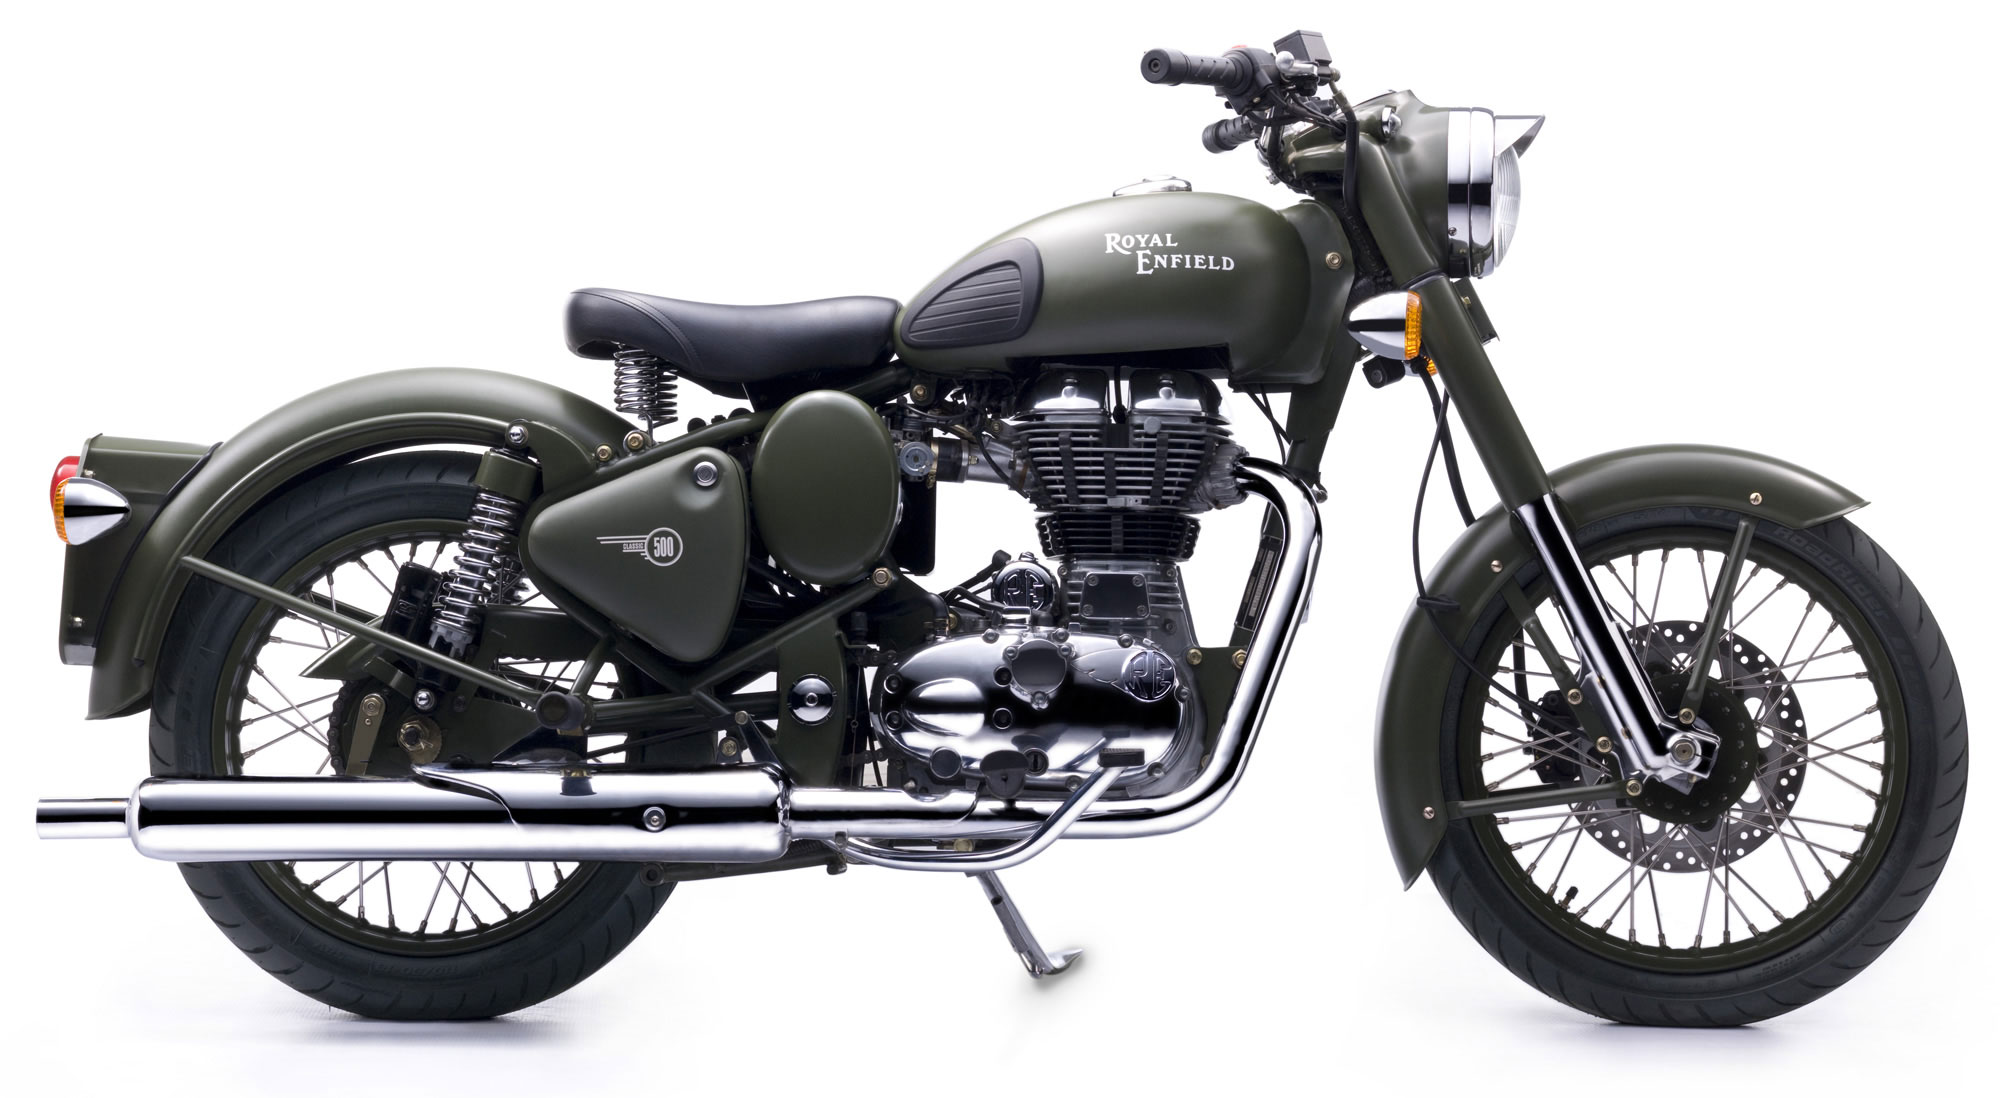 Royal Enfield Bullet 350 Army 2004 images #126530